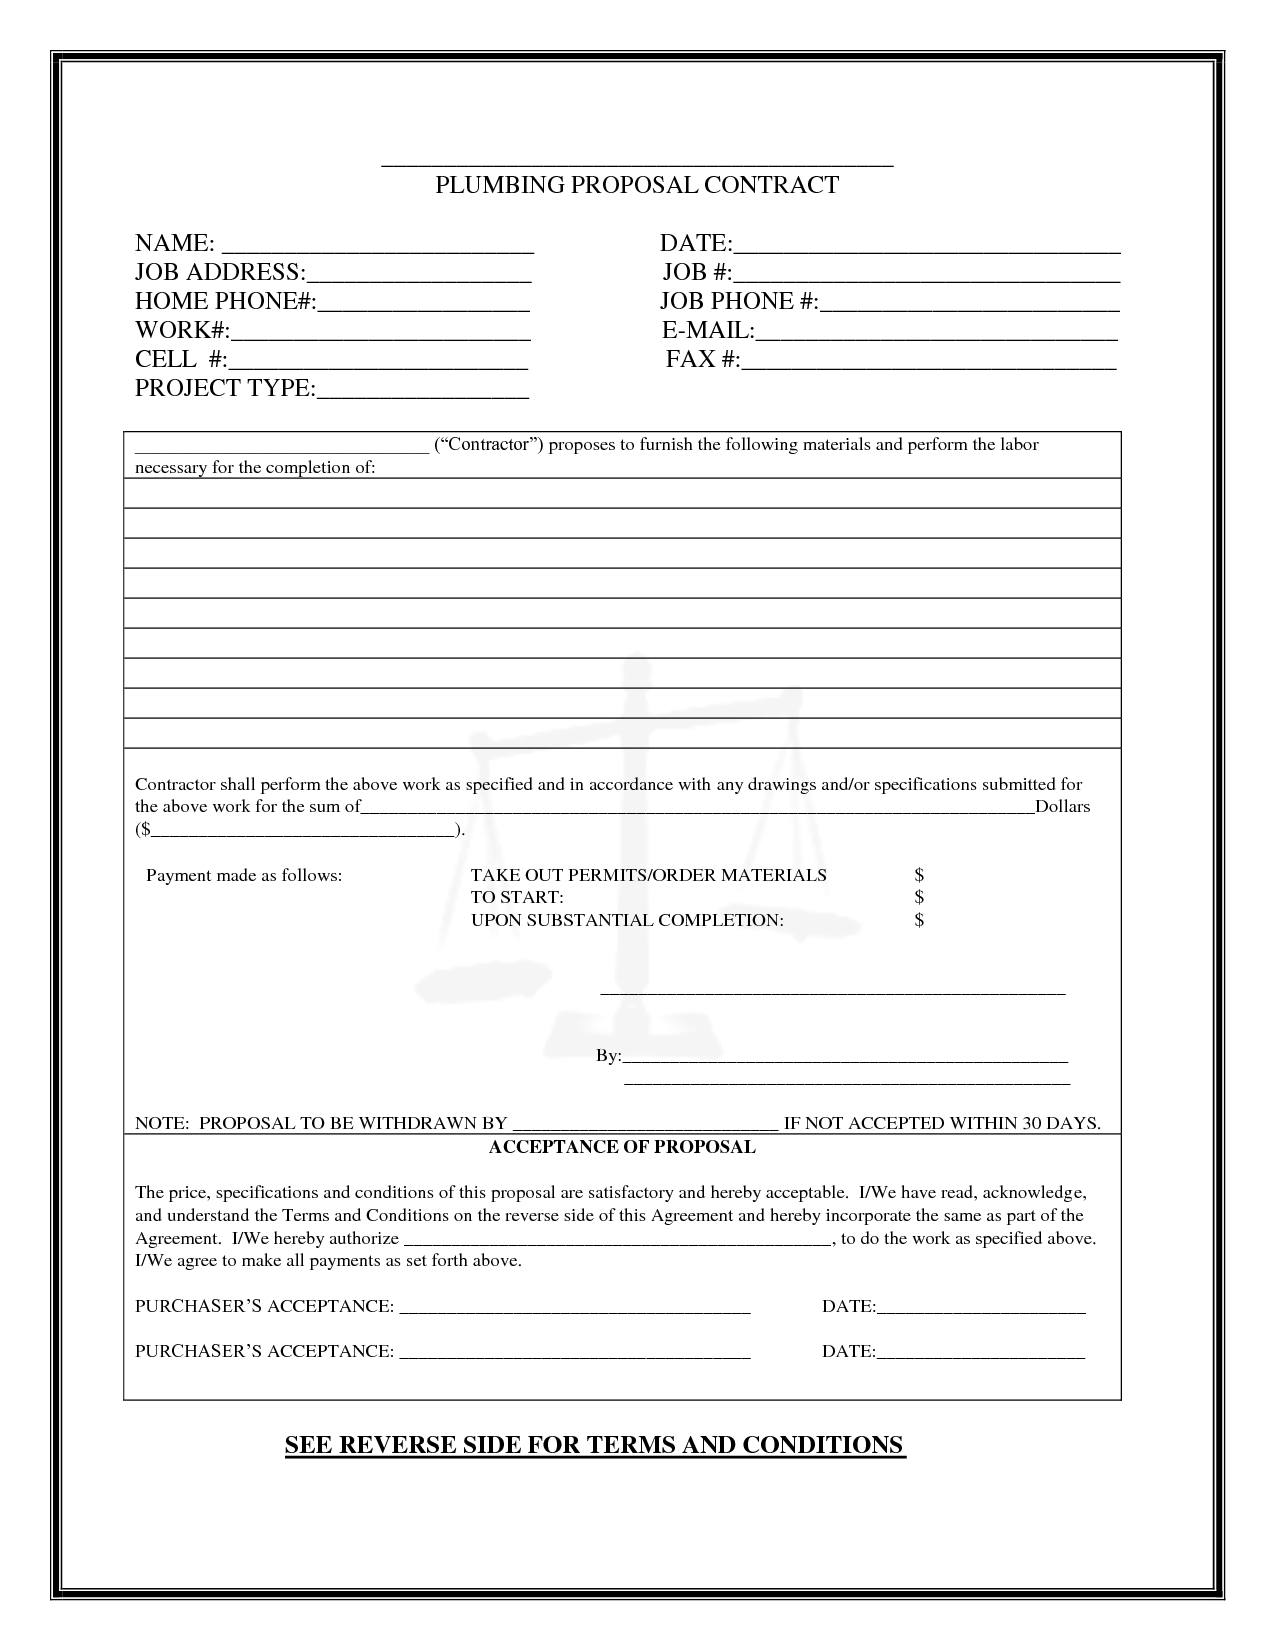 Plumbing Proposal Template Free] - 80 Images - 1000 Images About - Free Printable Proposal Forms